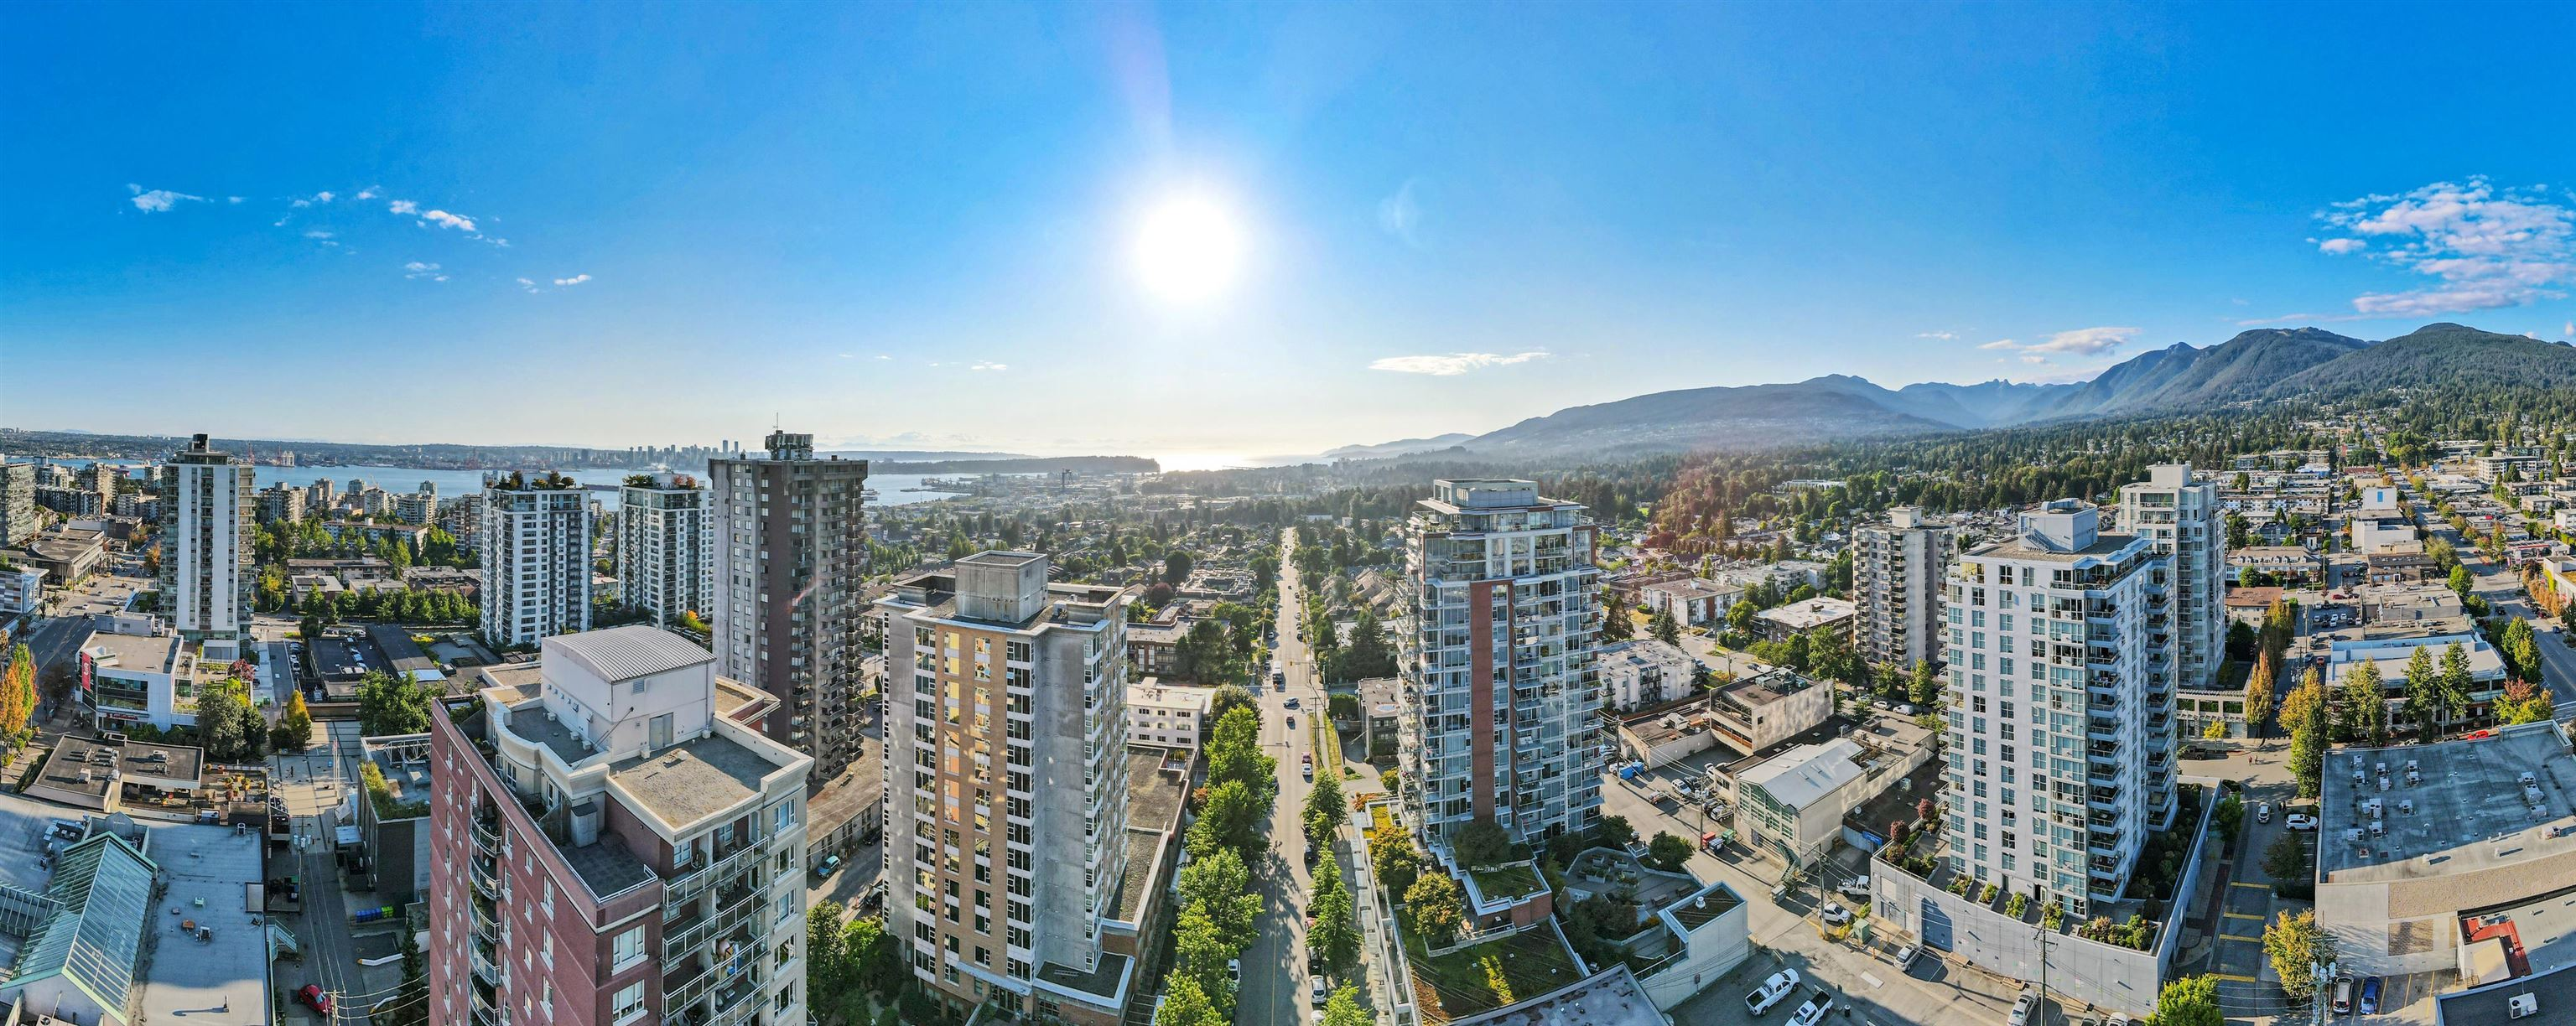 503 150 W 15TH STREET - Central Lonsdale Apartment/Condo for sale, 2 Bedrooms (R2624732) - #29